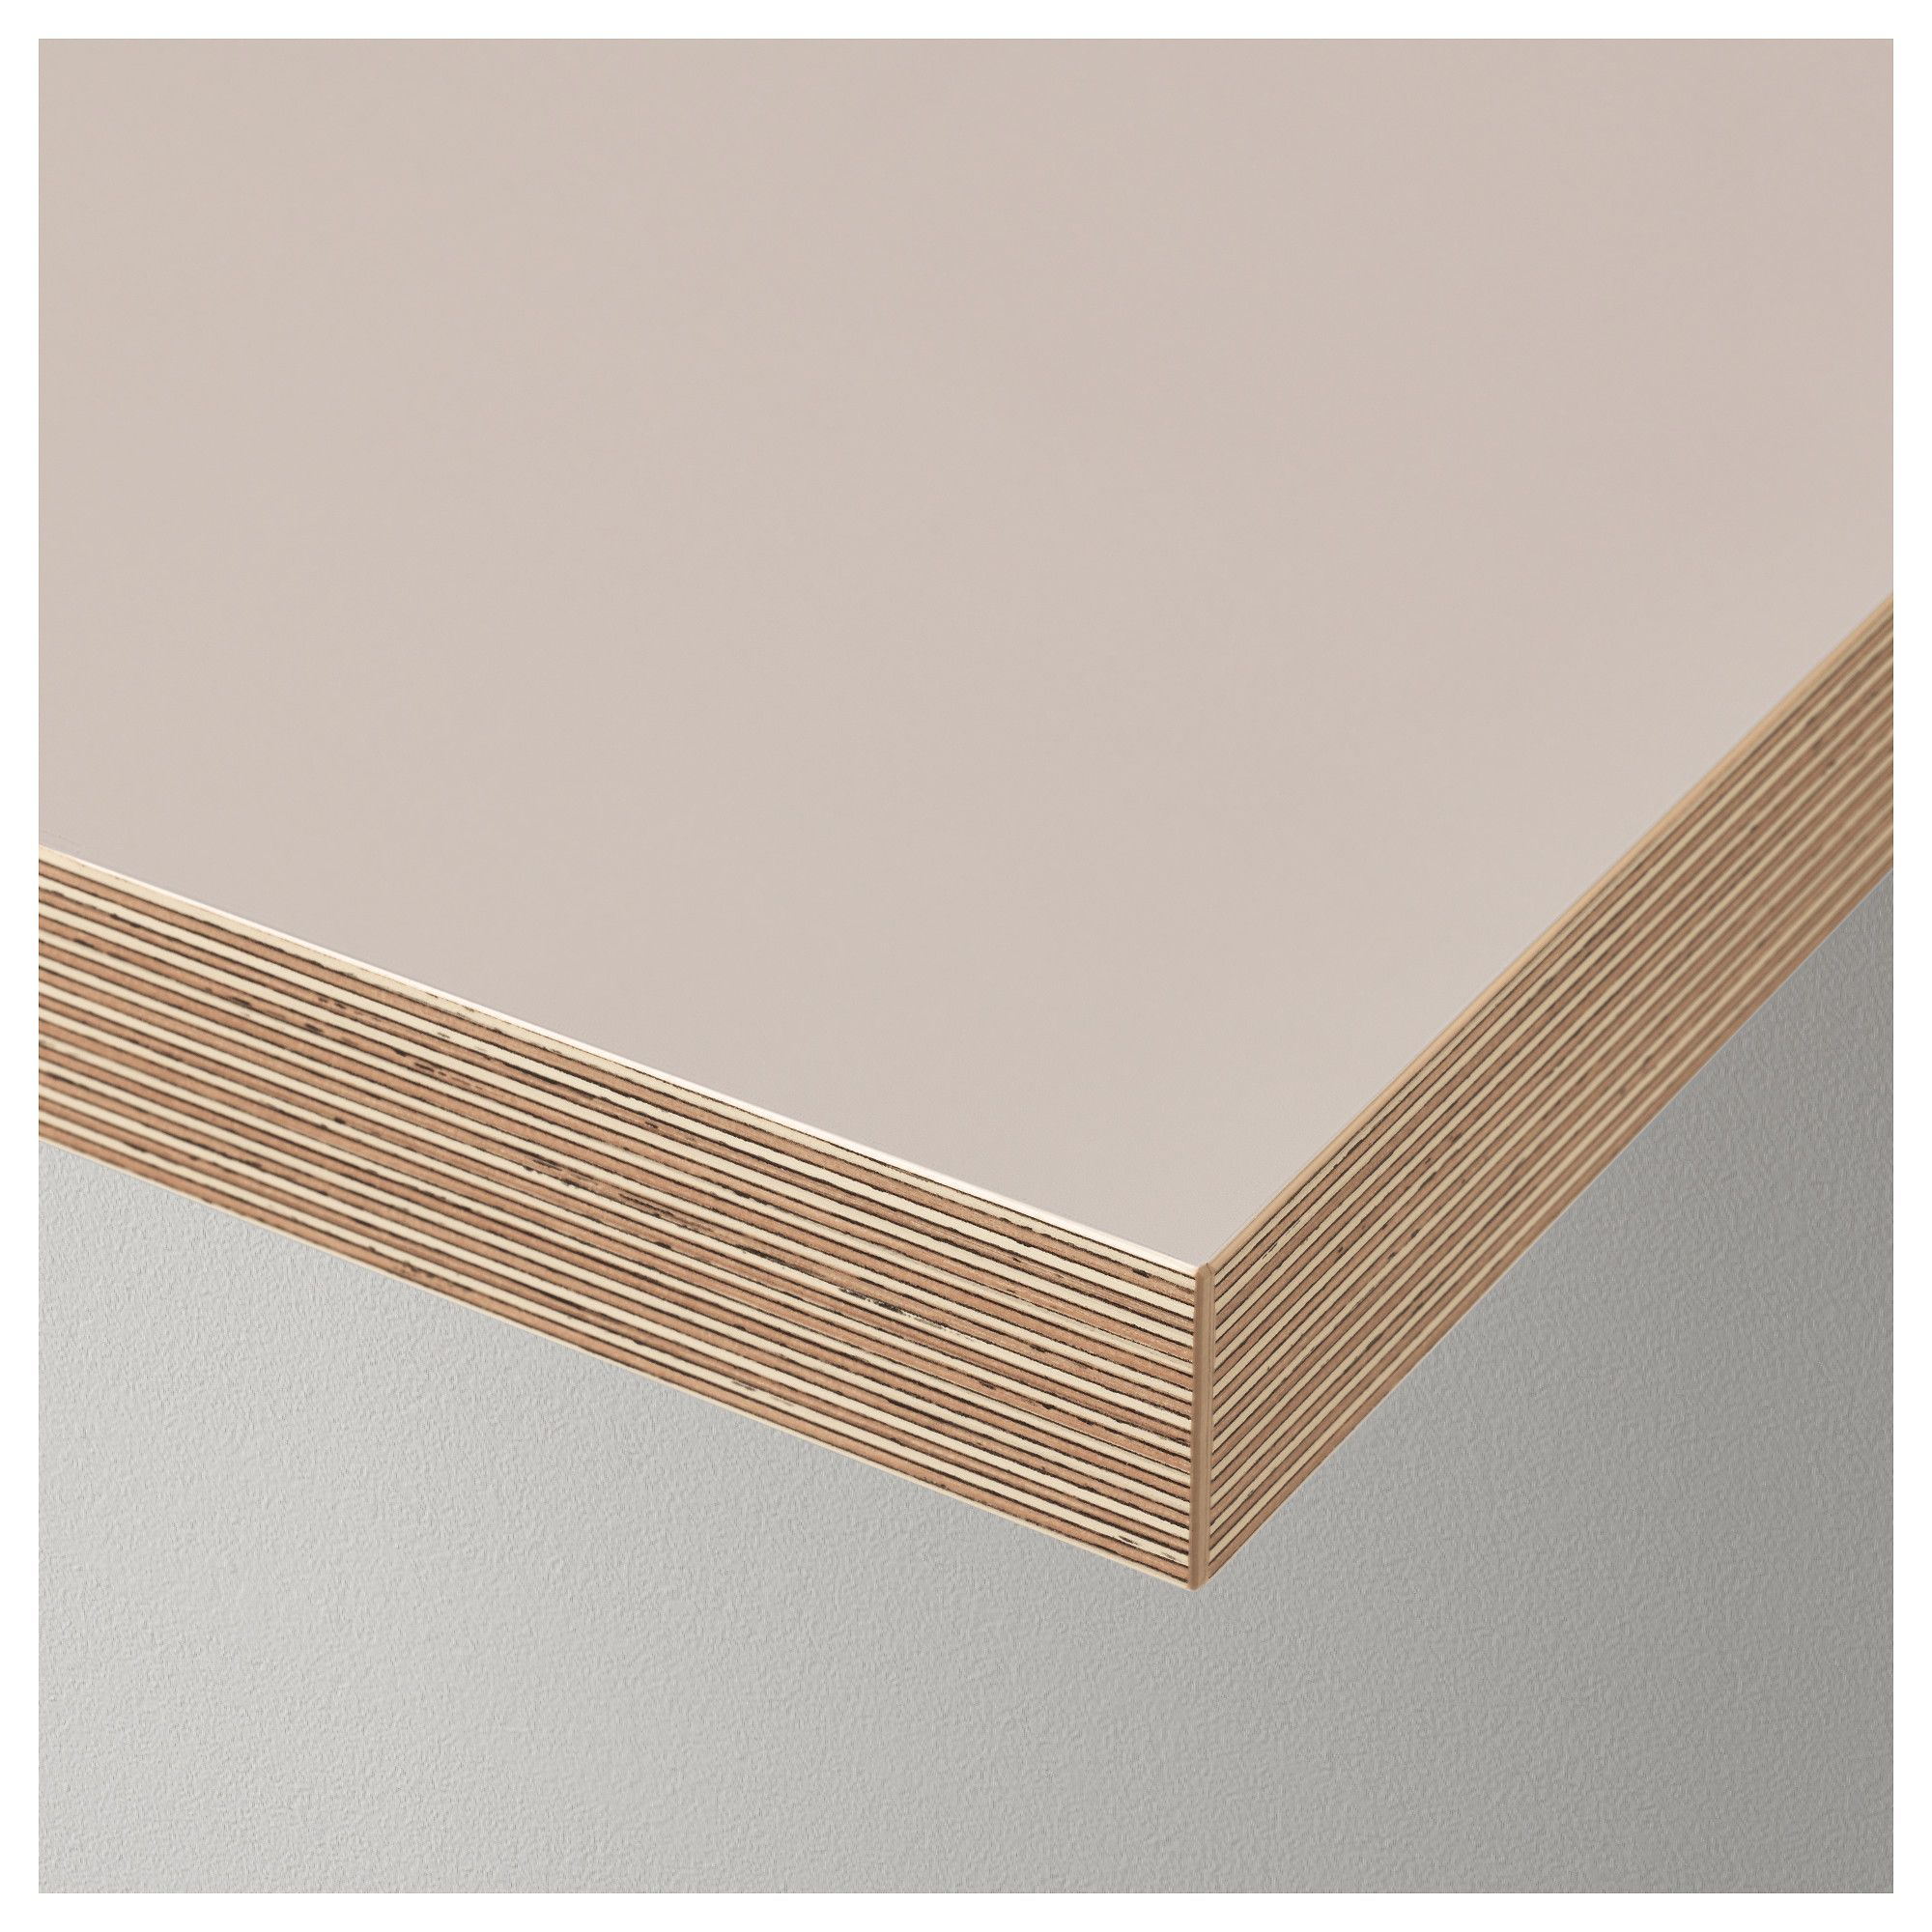 Tischplatten Von Ikea Ikea Linnmon Tabletop Beige Products Ikea Table Tops